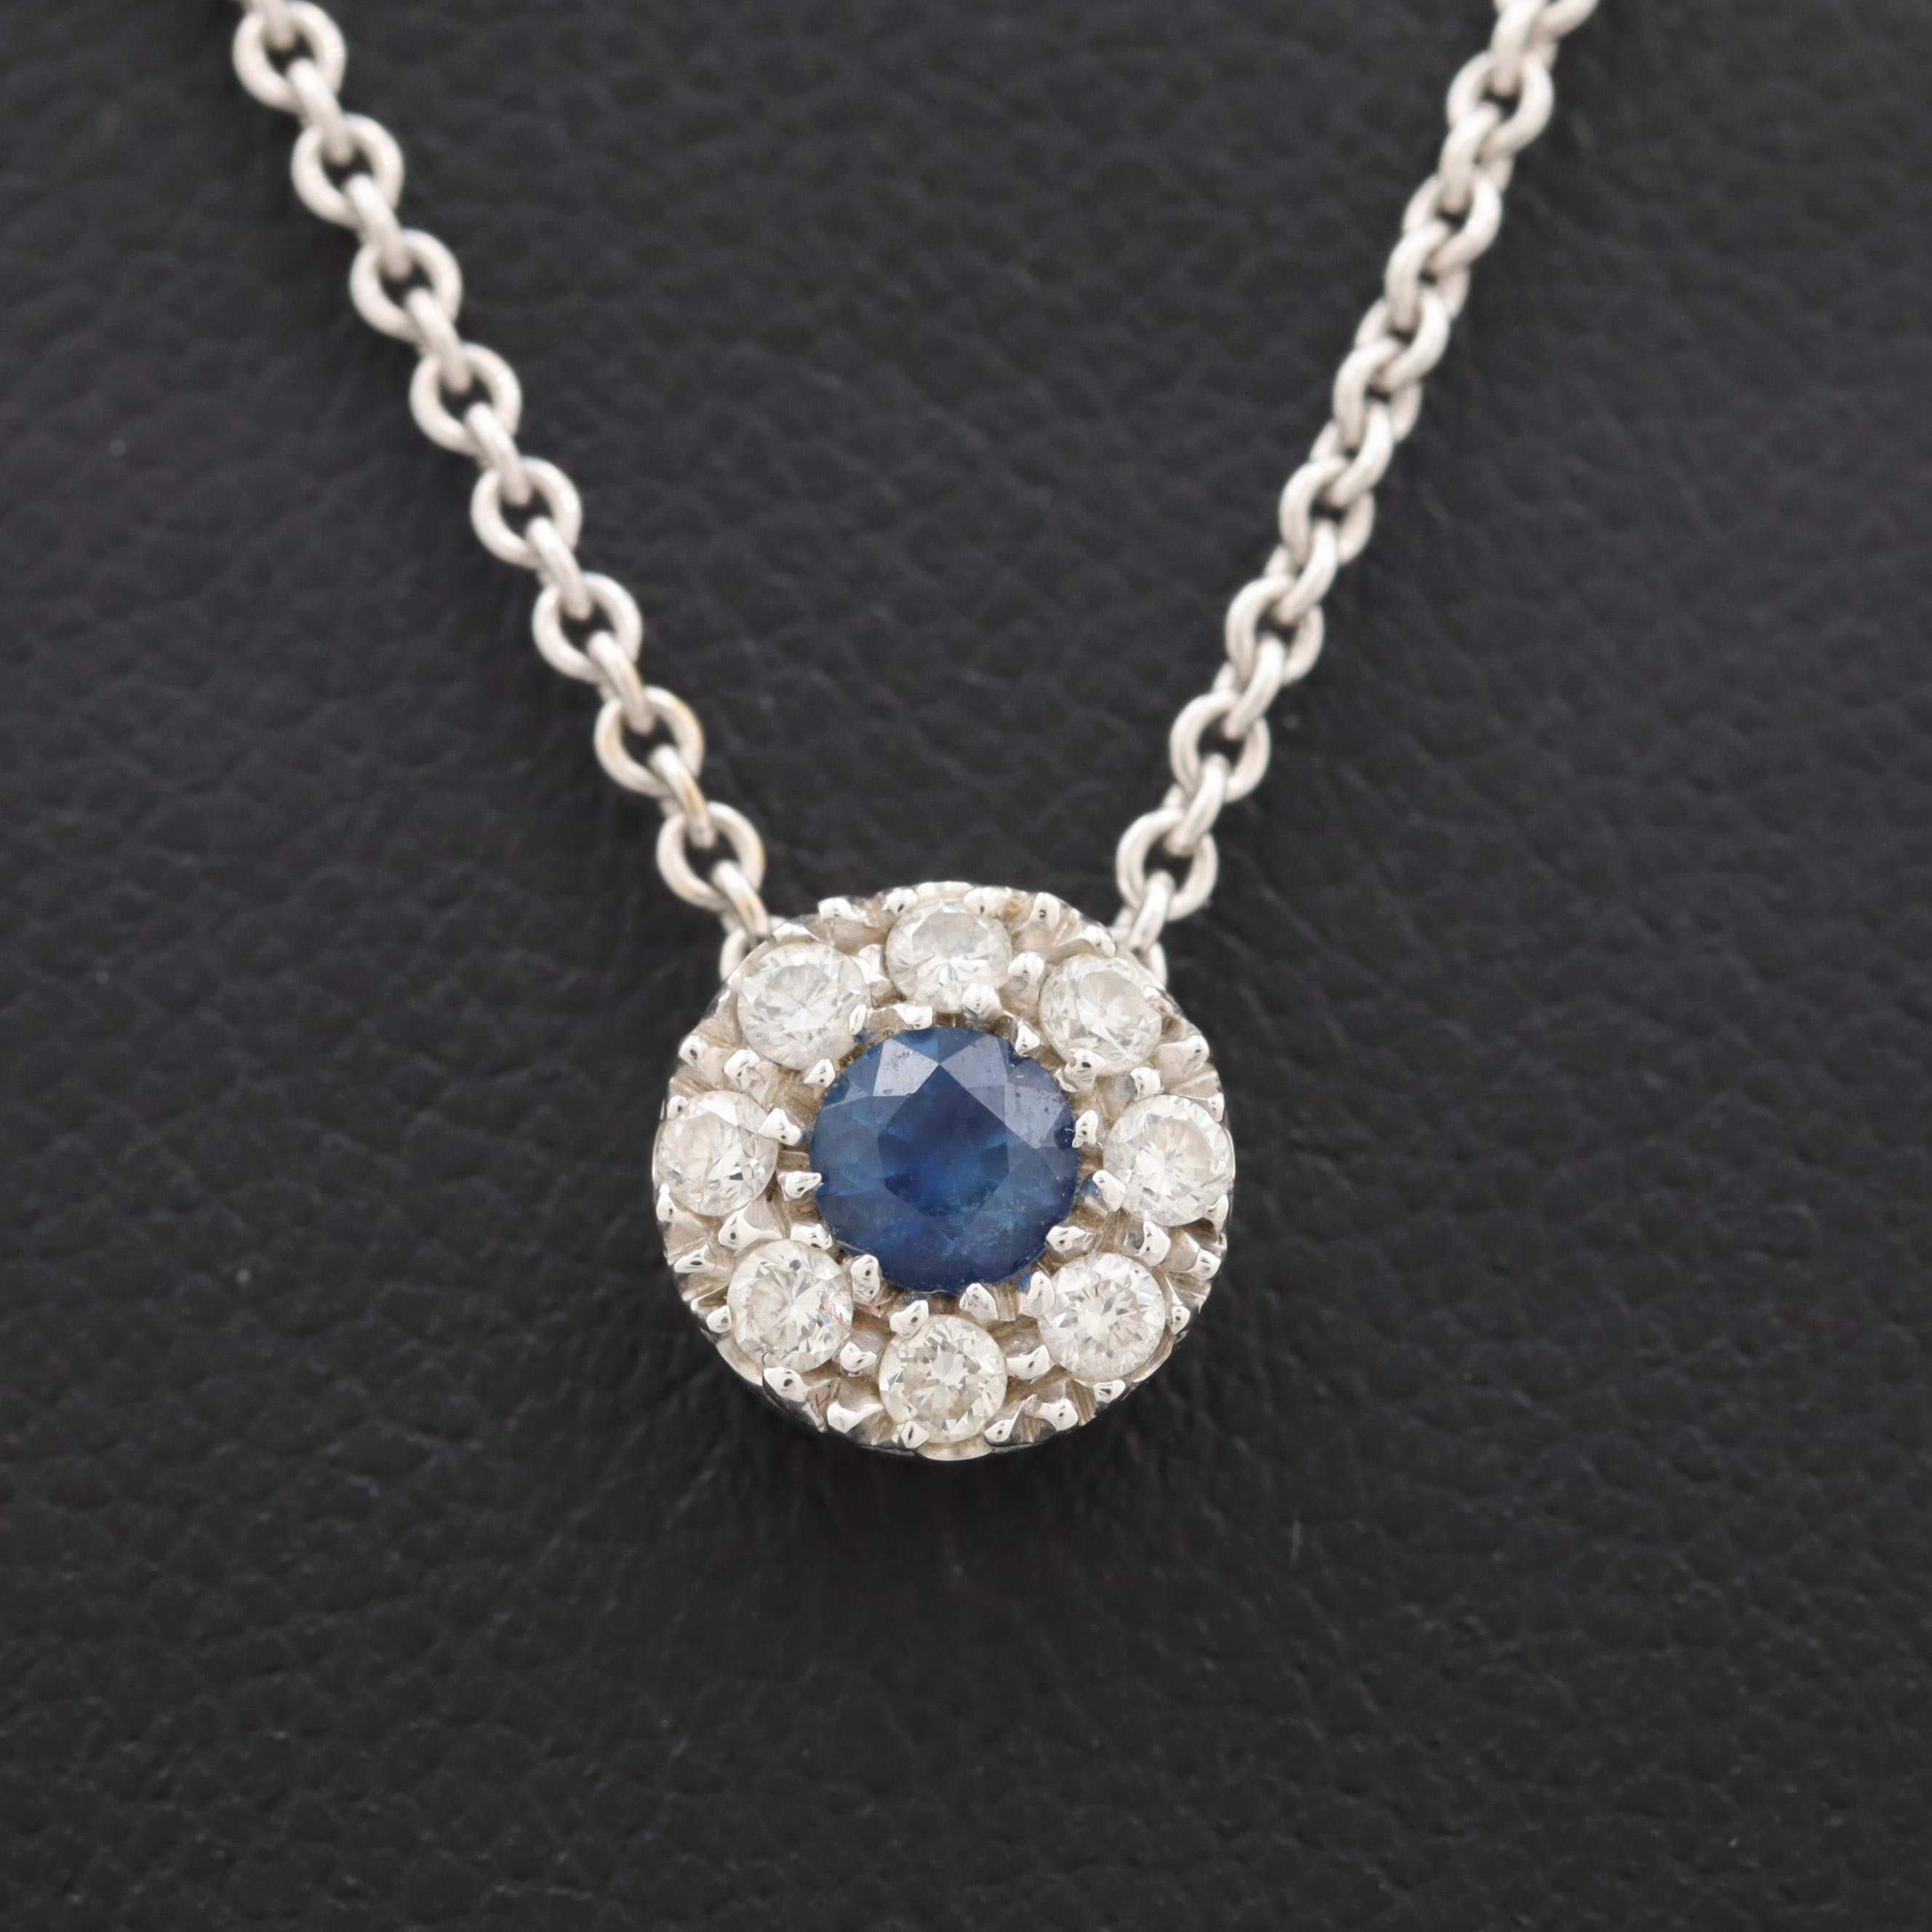 18K White Gold Blue Sapphire and Diamond Adjustable Necklace